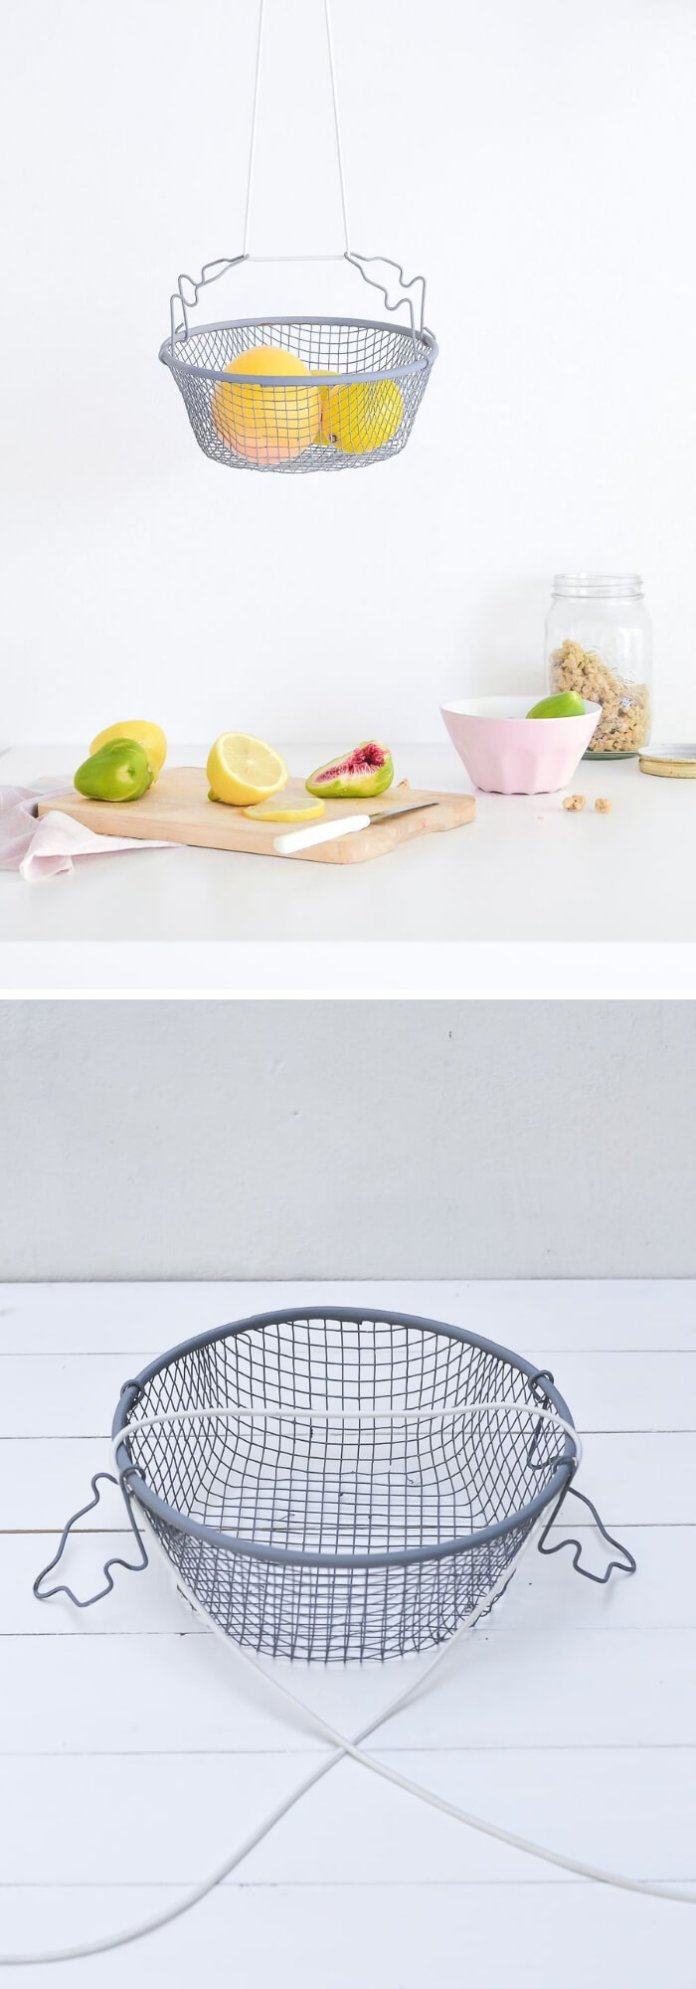 DIY Hanging Fruit Basket | Best Fruit and Vegetable Storage Ideas For Your Kitchen